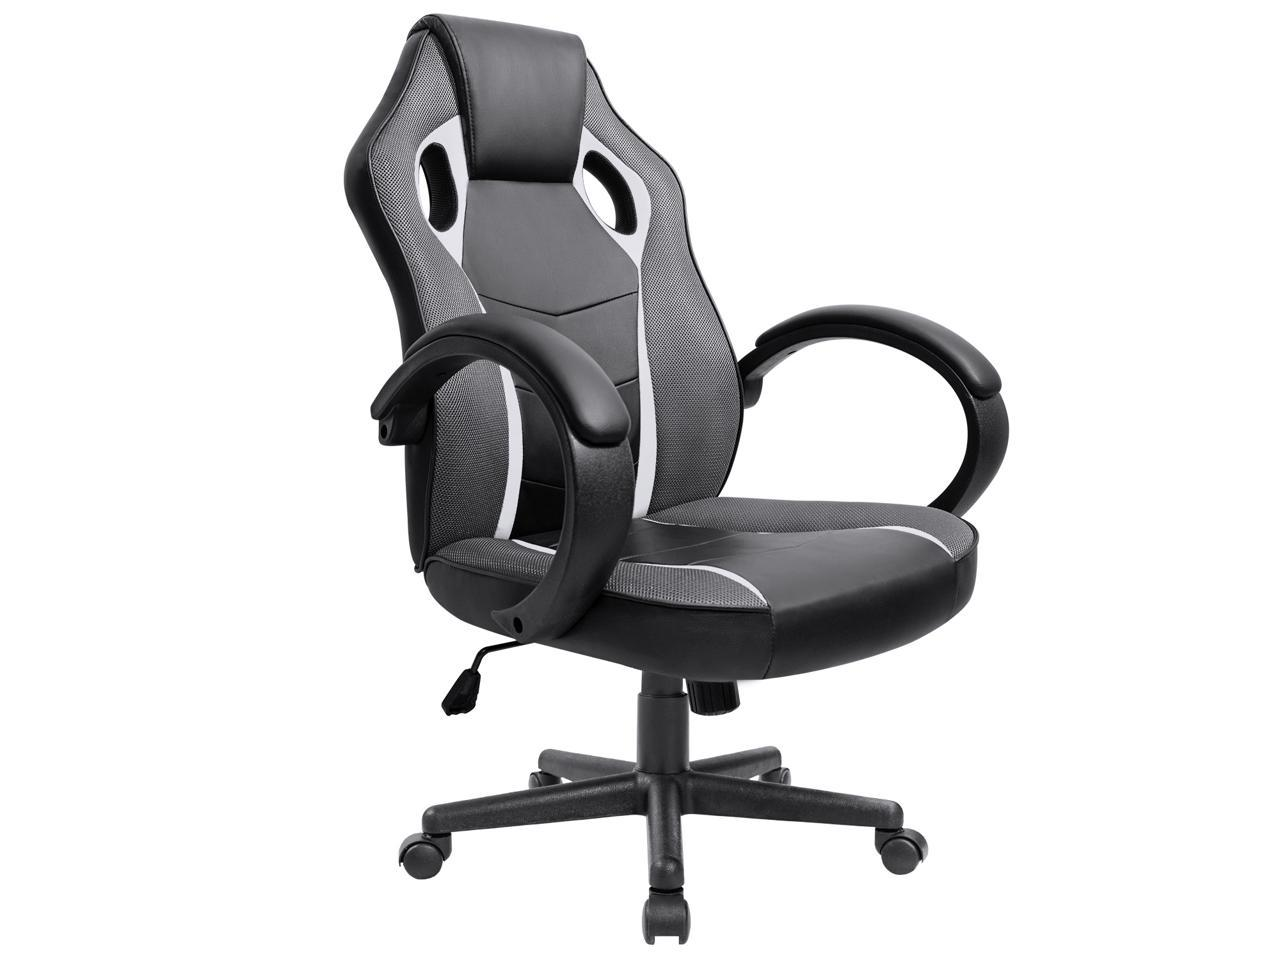 Homall Ergonomic High Back Gaming Desk Chair